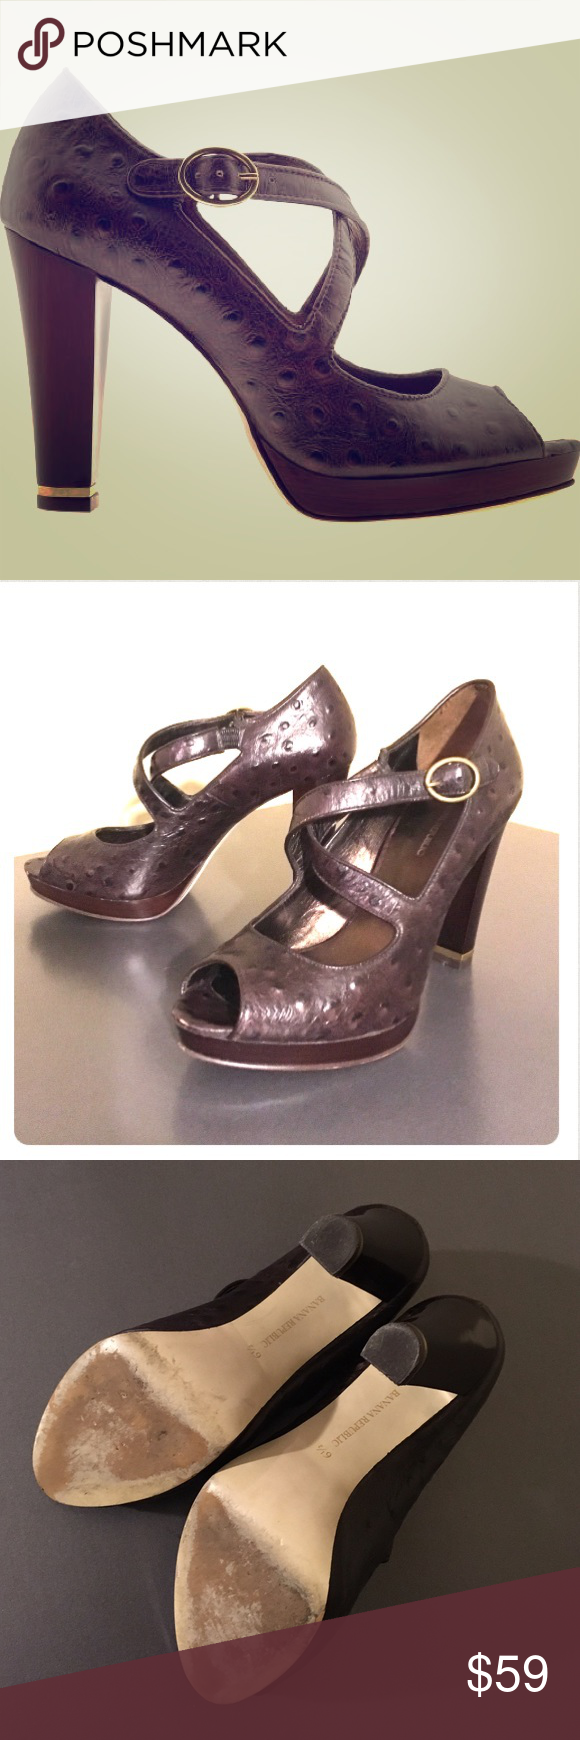 """Banana Republic 'Dallas' Platform / 6.5 EUC 